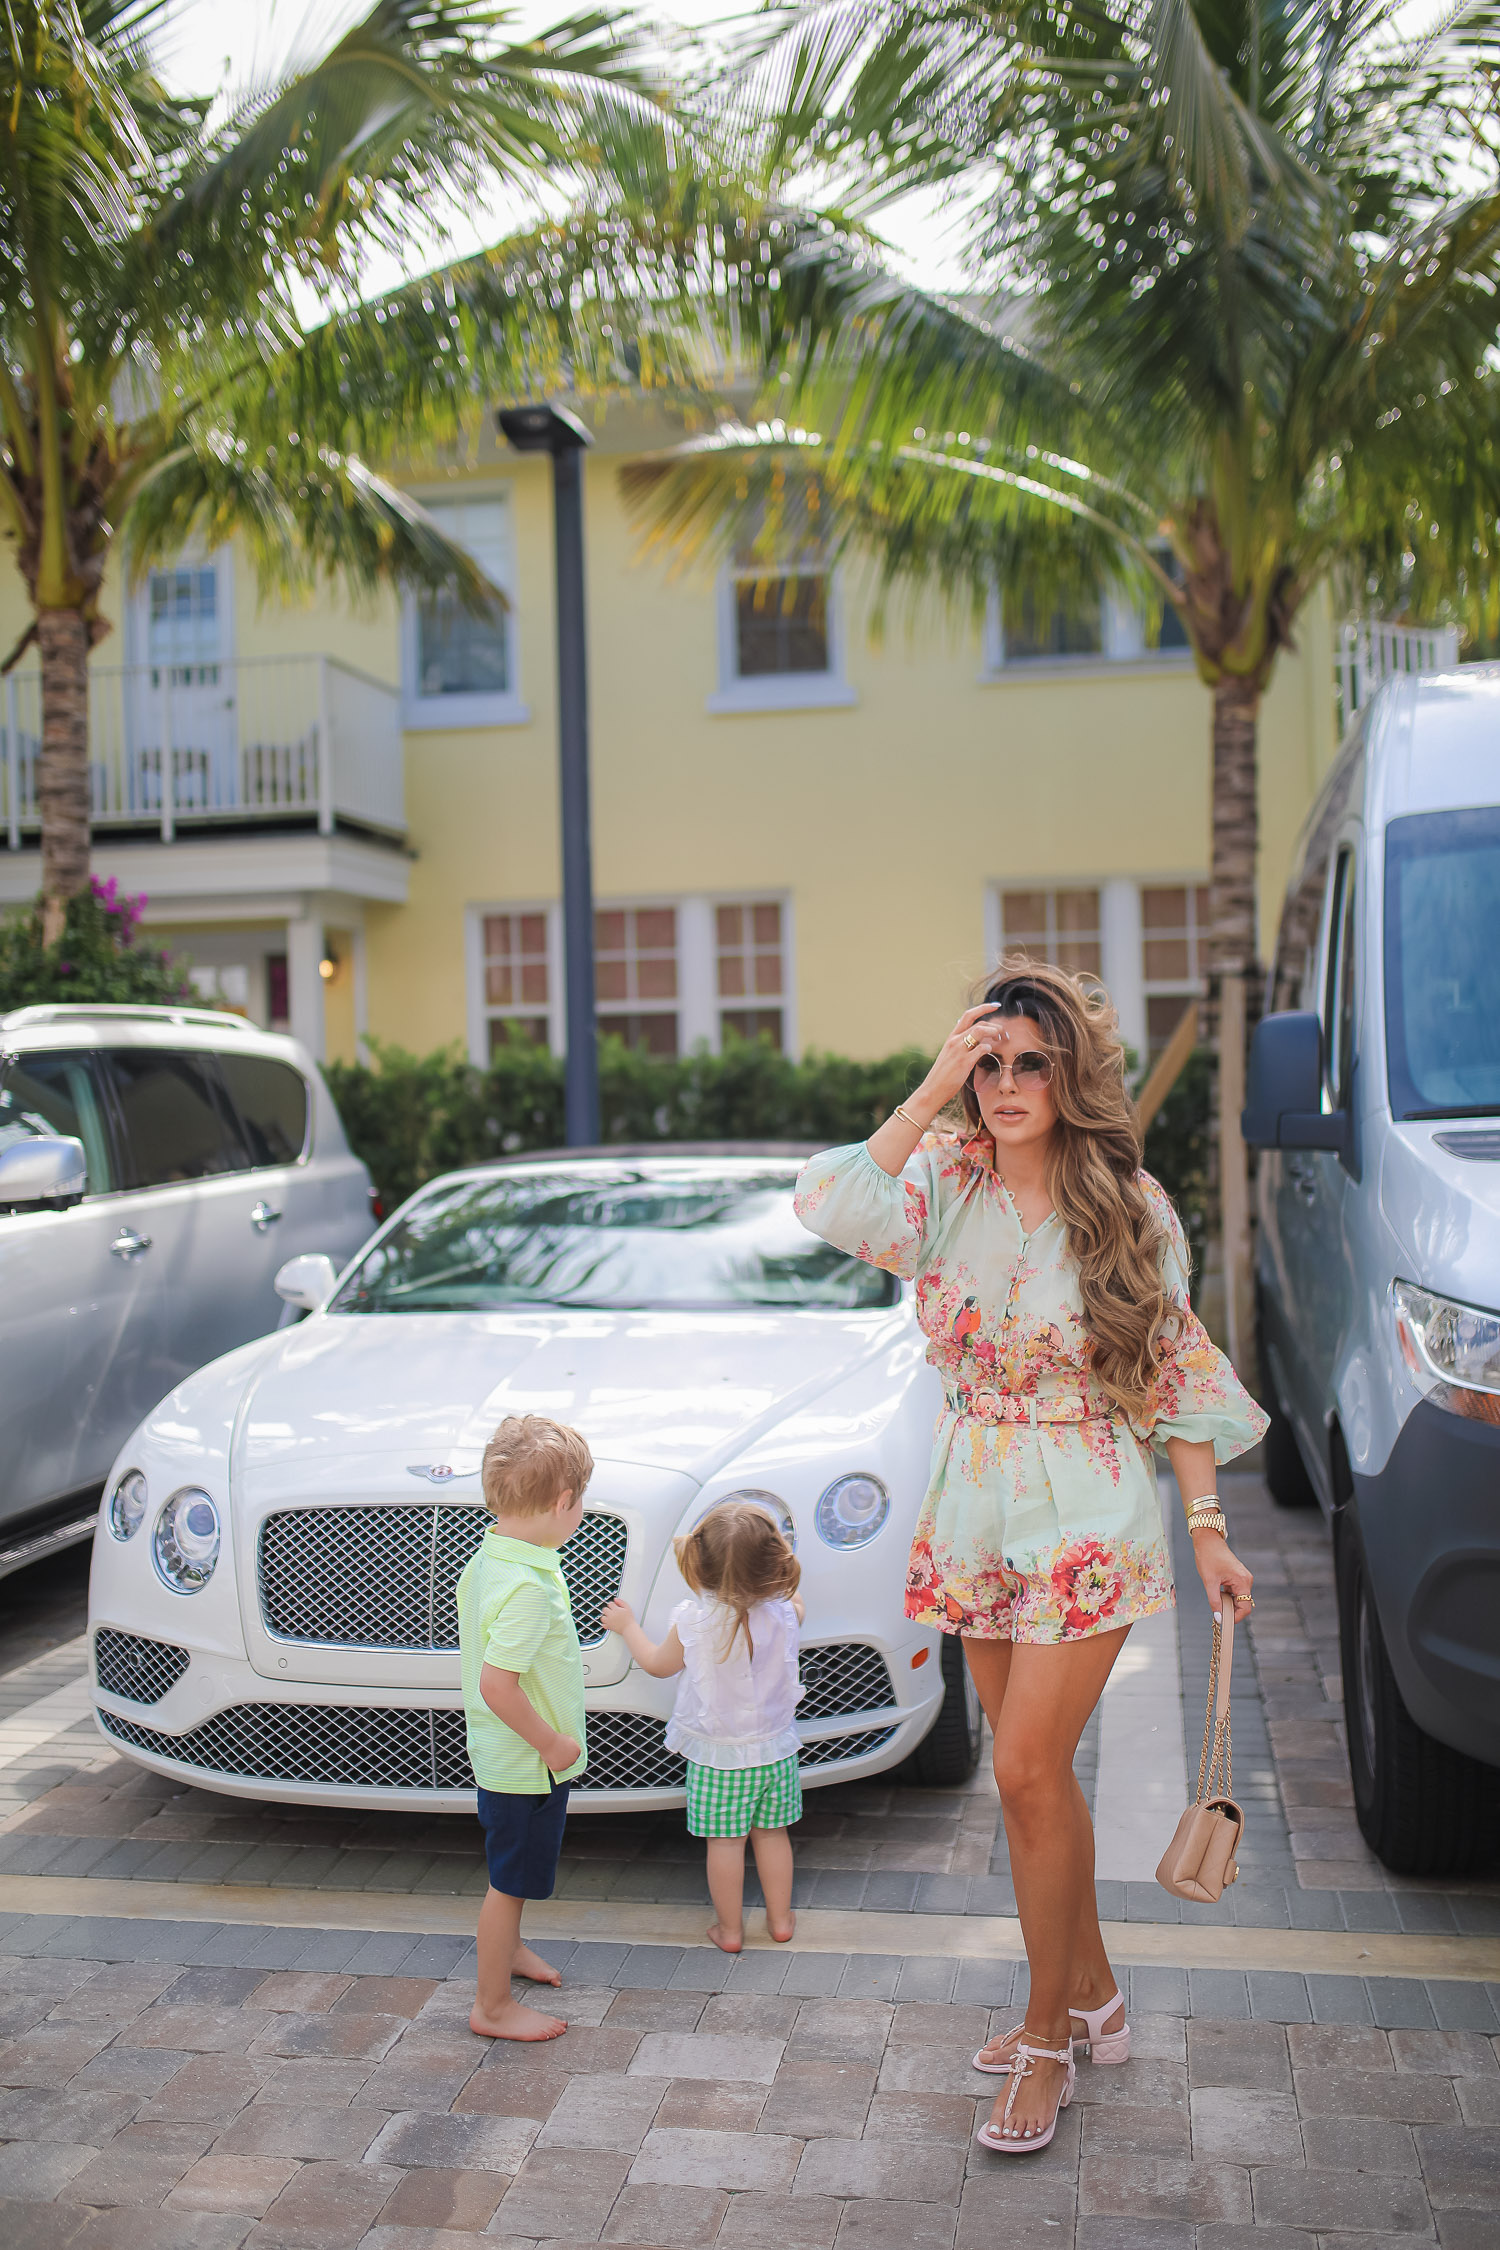 Palm beach where to stay, White elephant palm beach, Zimmerman Mae Floral Shorts and Blouse, Tiktok viral jewelry anklet, Amazon Tiktok Viral anklet, Chanel Large Button Paris Gold earrings, high end fashion blog, Emily gemma | Zimmermann Outfit by popular US fashion blog, The Sweetest Thing: image of Emily Gemma standing with her kids by a white Bentley and wearing a Zimmerman Mae Floral Shorts and Blouse, Tiktok viral jewelry anklet, Amazon Tiktok Viral anklet, Chanel sandals, Chanel Large Button Paris Gold earrings, Cartier bracelets, gold Rolex watch, and carrying a Chanel handbag.